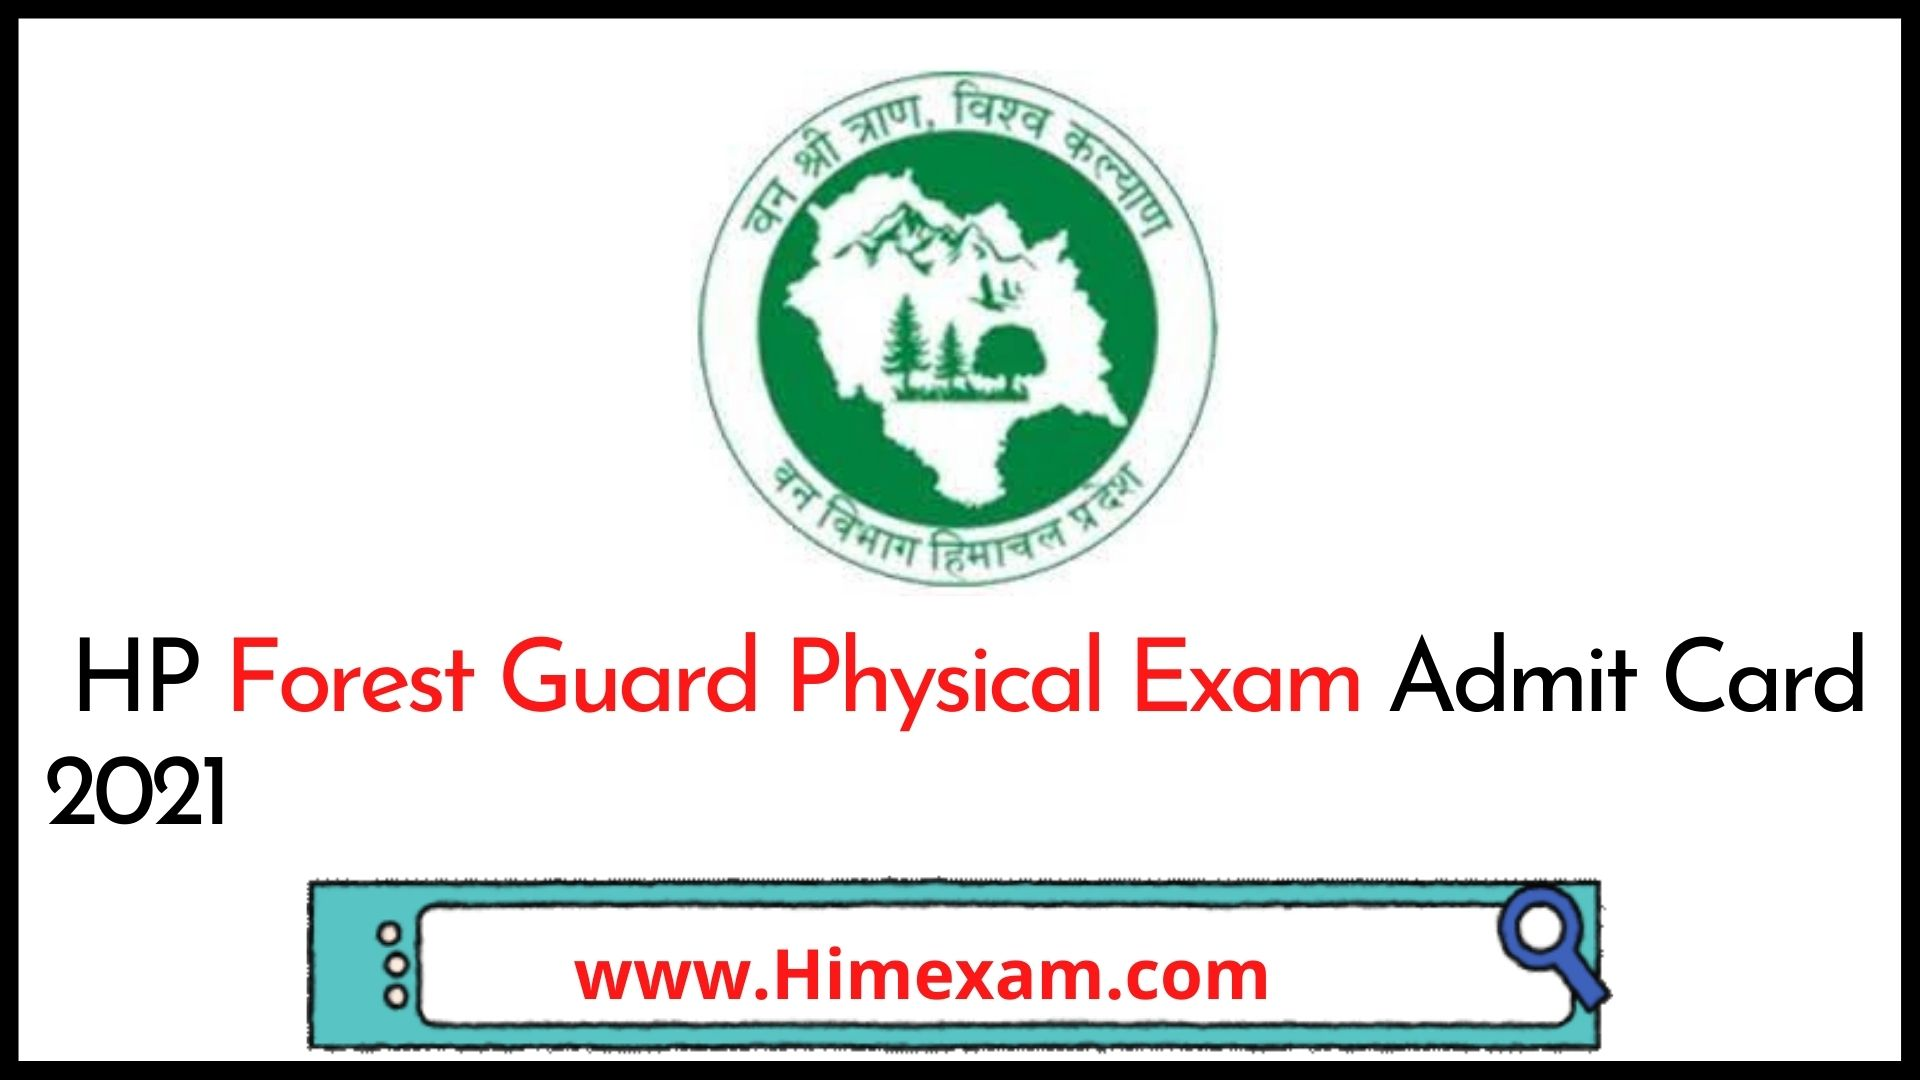 HP Forest Guard Physical Exam Admit Card 2021